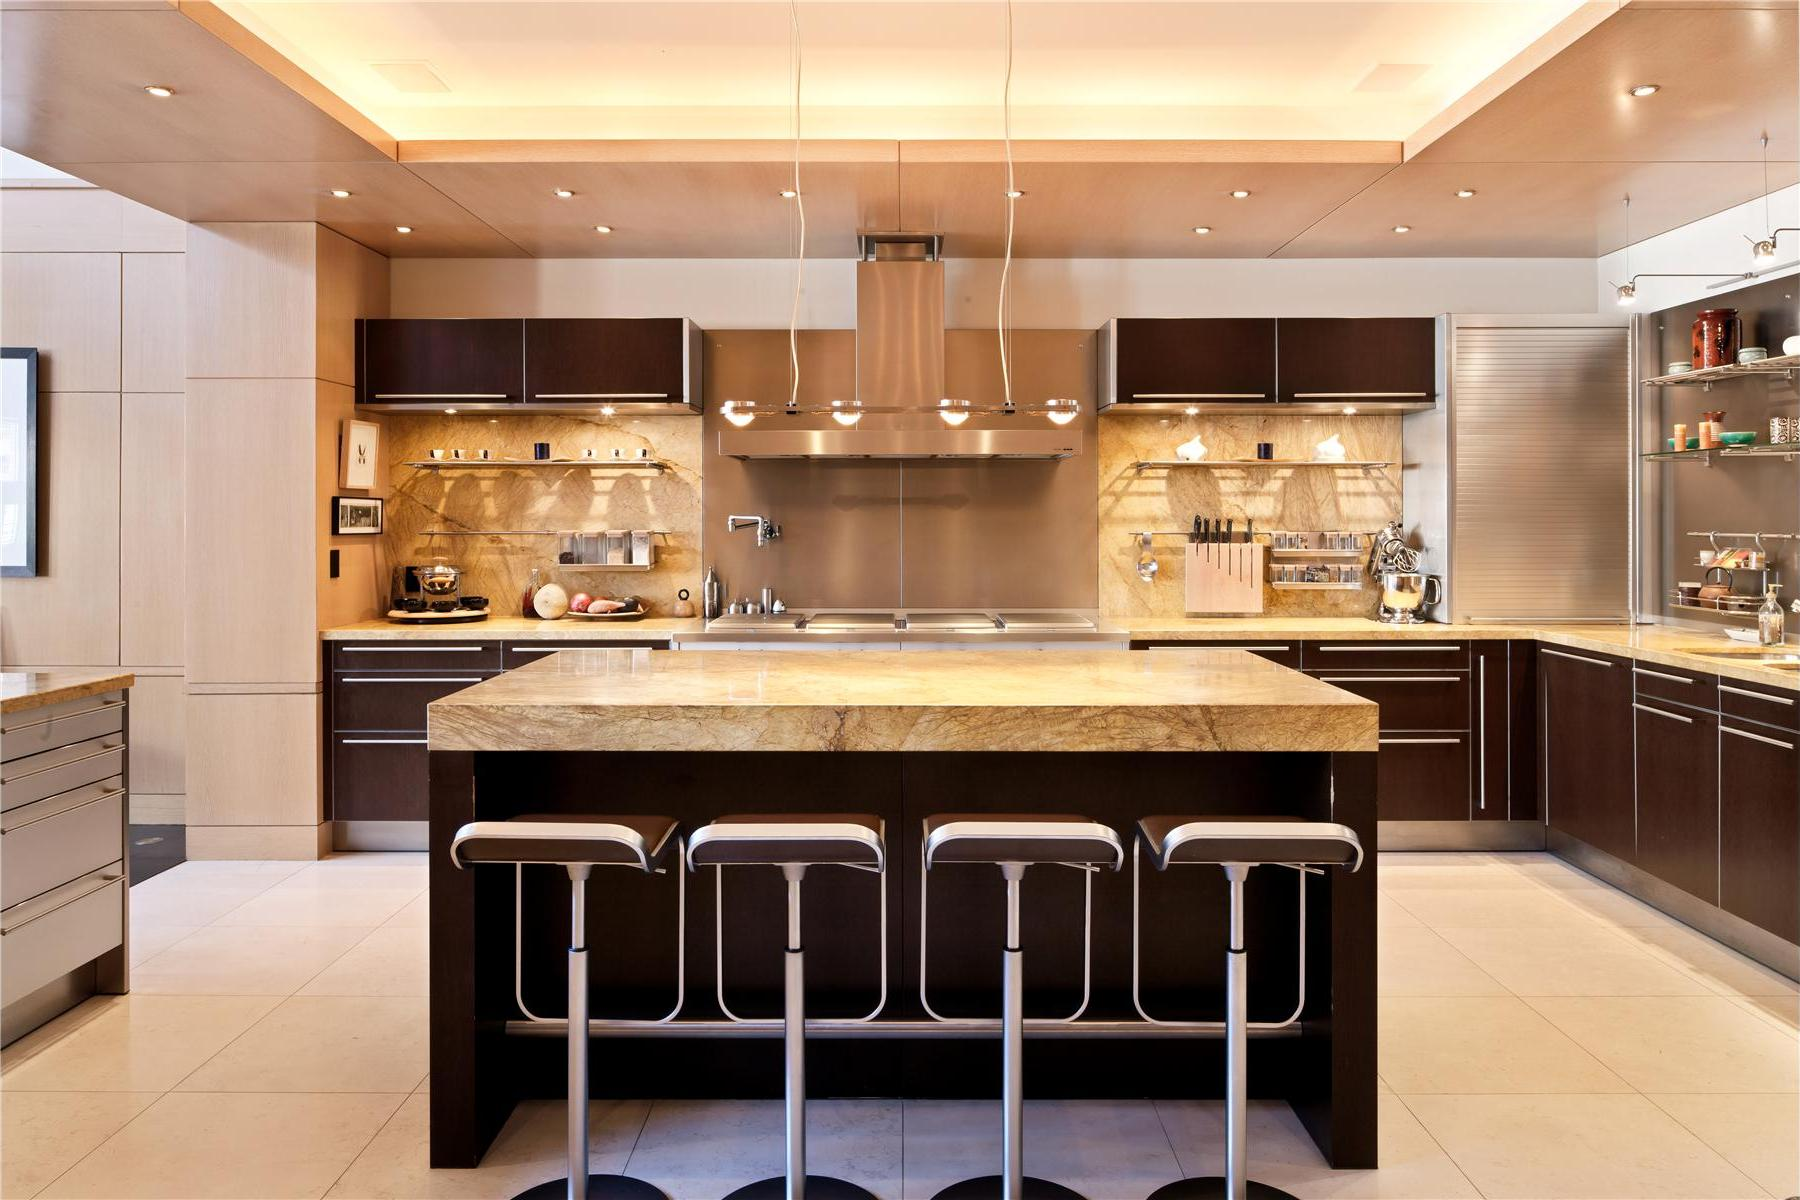 interior-dark-brown-kitchen-cabinets-with-creamy-surface-and-bar-stools-luxurious-home-interior-desi